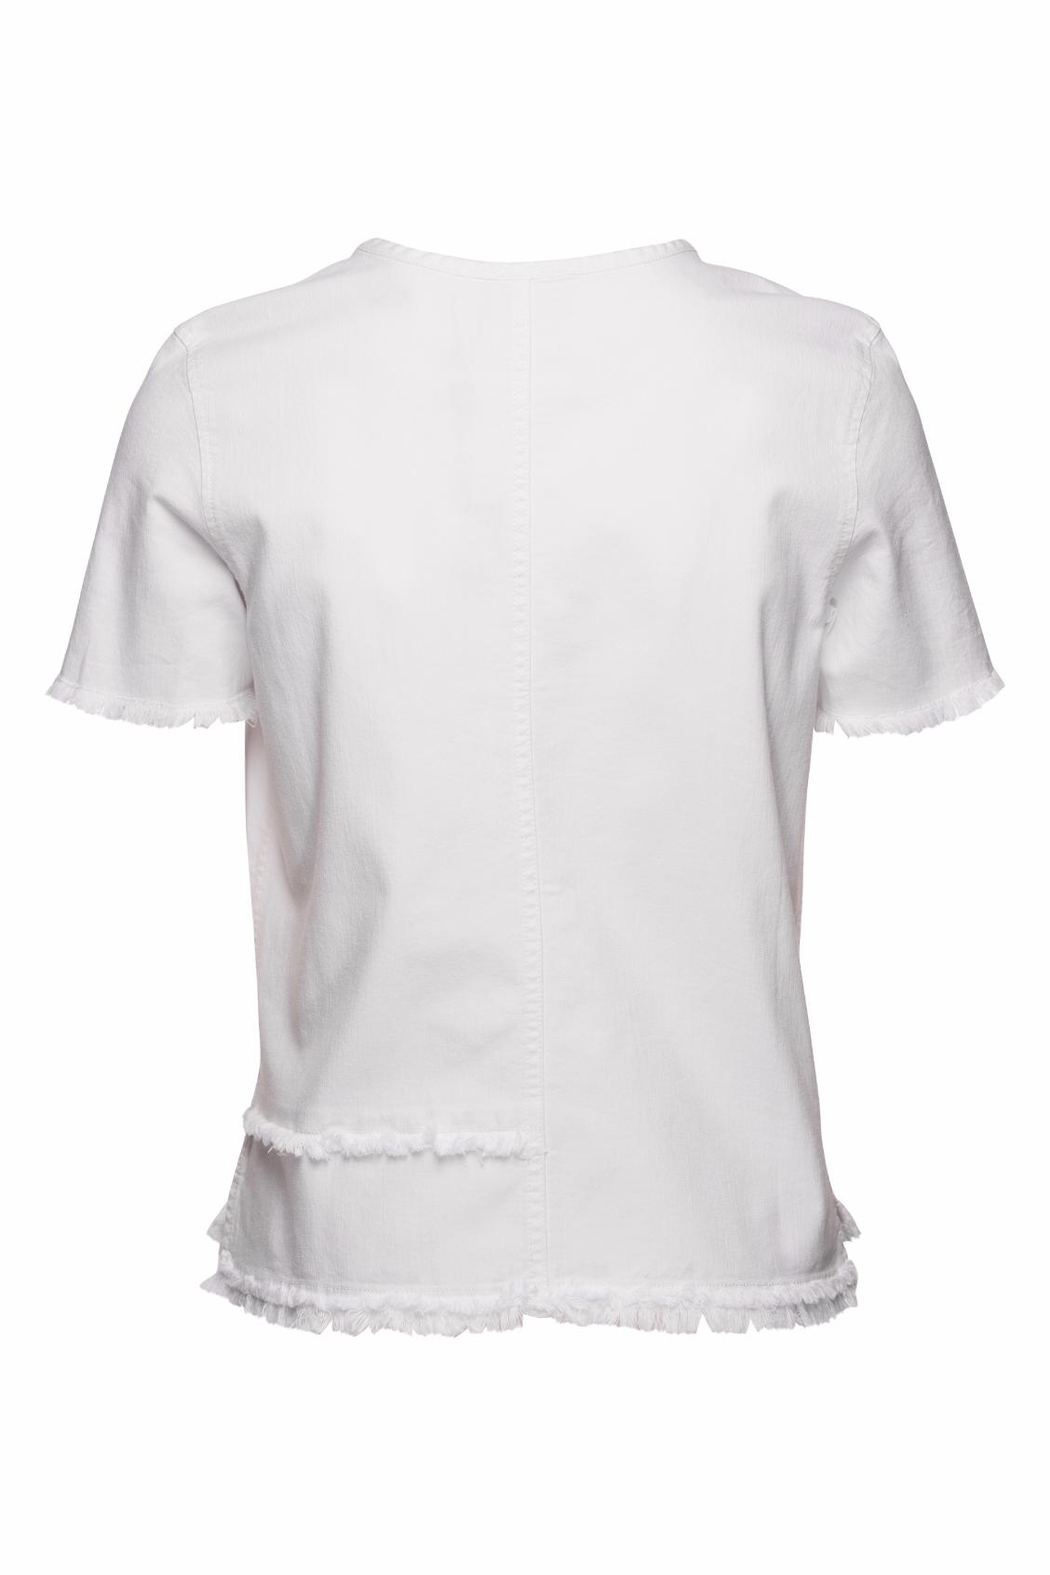 AG Adriano Goldschmied Tawny Raw Tee - Front Full Image